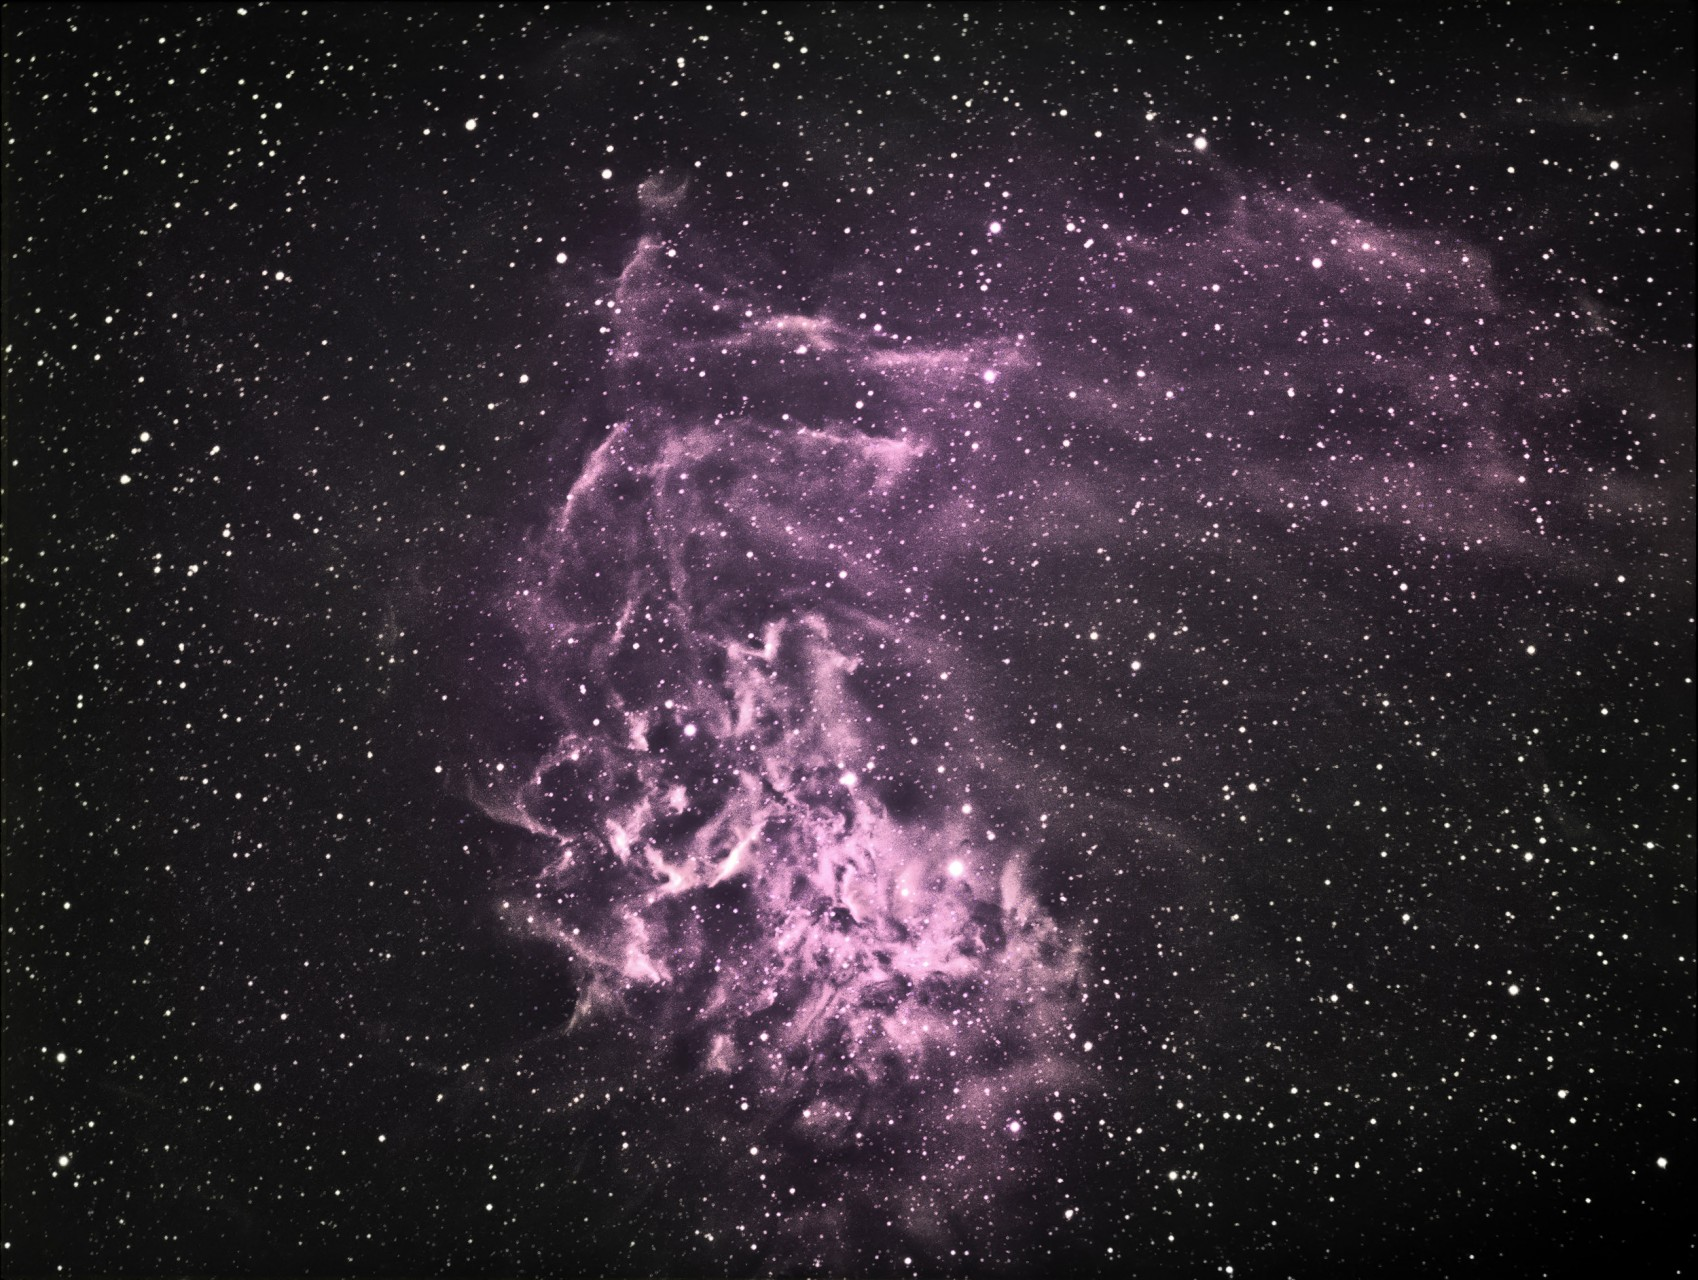 The Flaming Star Nebula (IC 405)